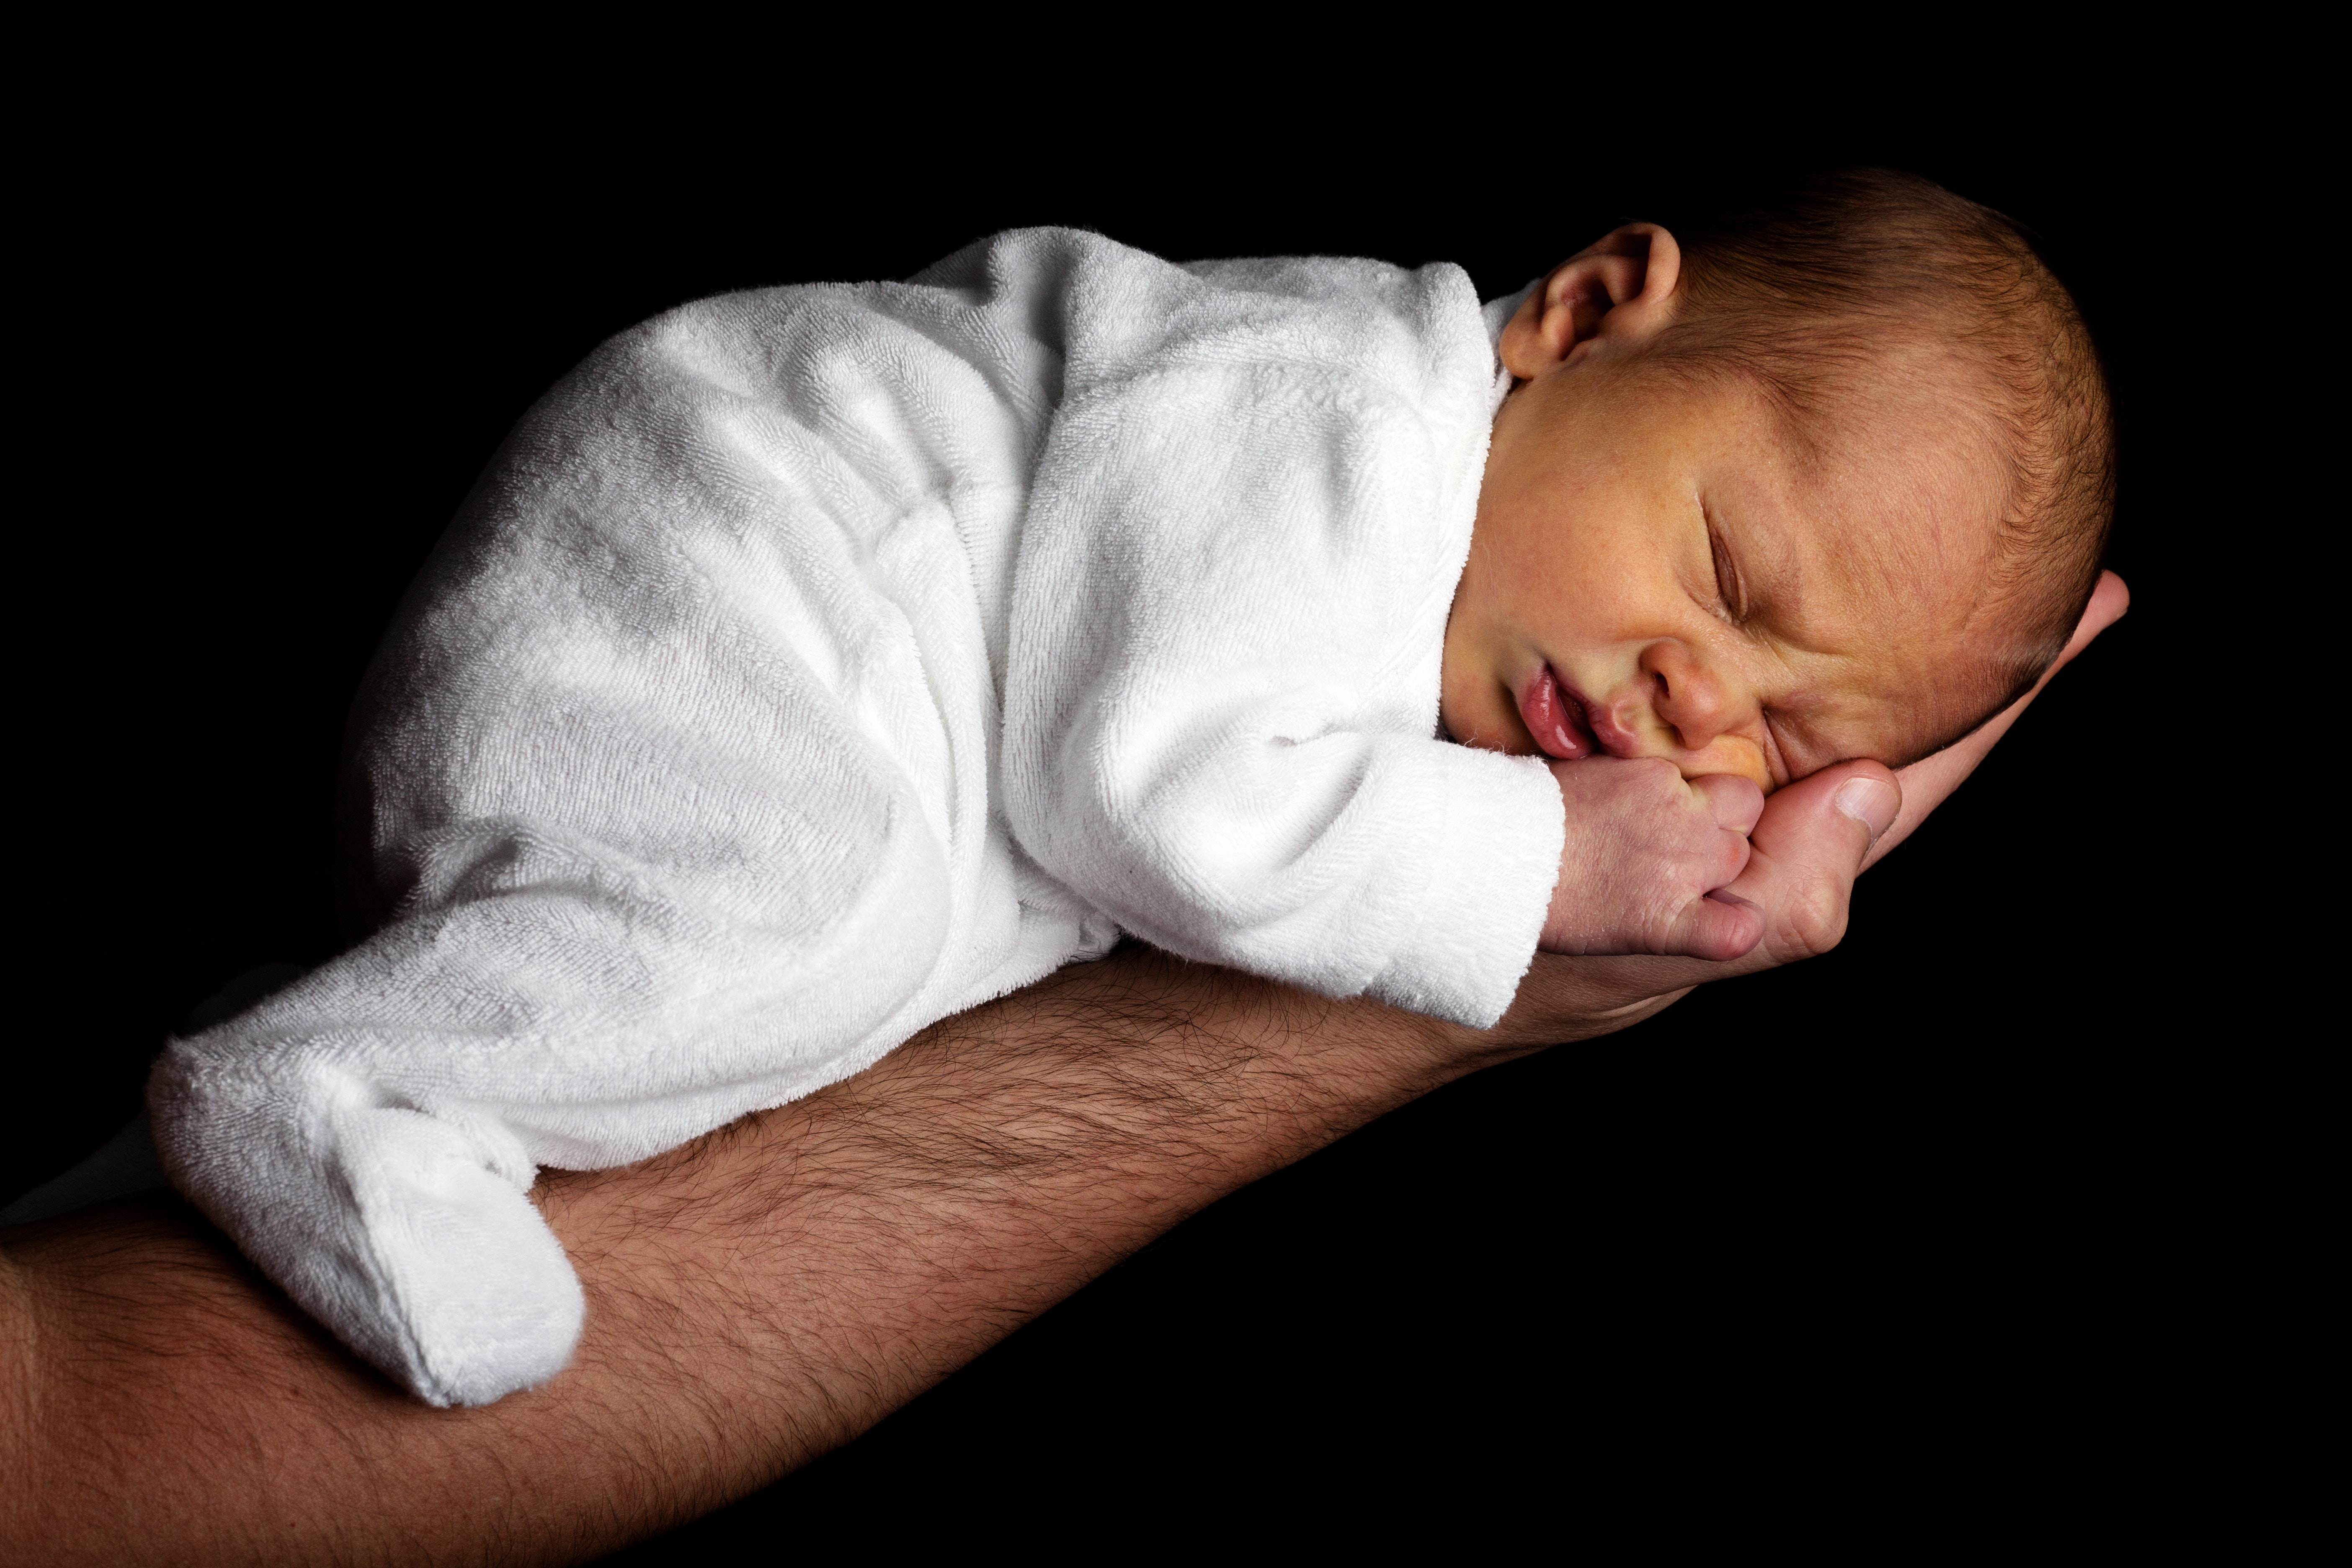 c00d9bf17ec8 Baby in White Onesie Sleeping on Person s Hand · Free Stock Photo